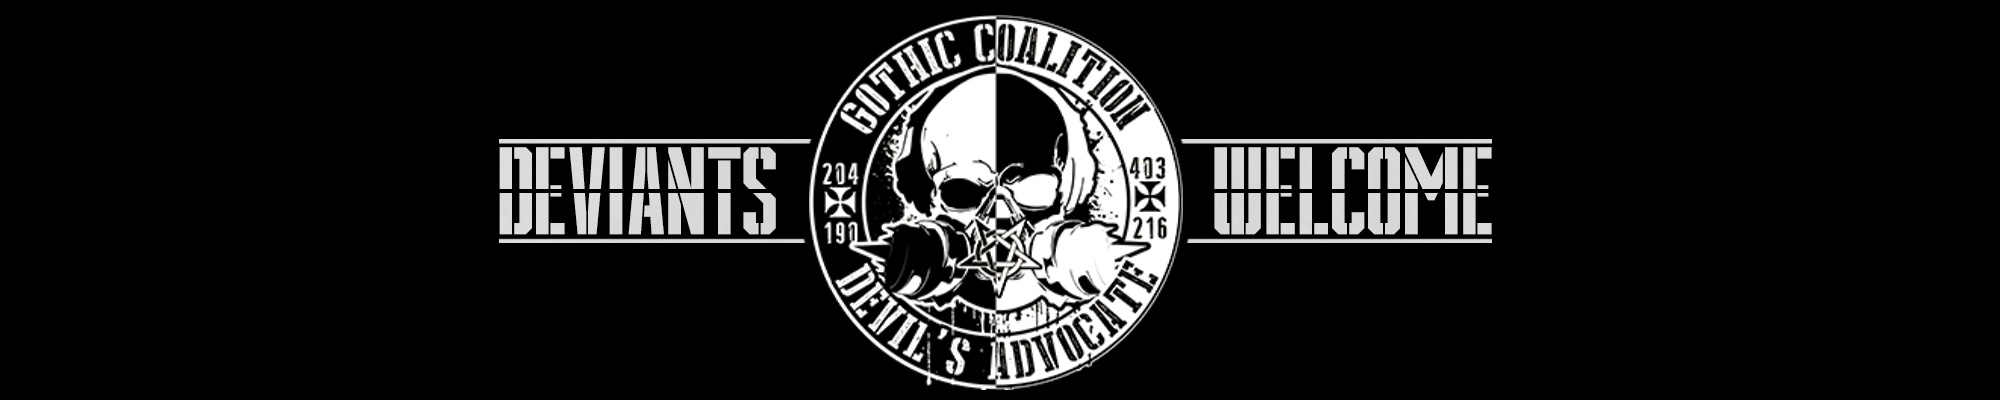 GothicCoalitionClothing Cover